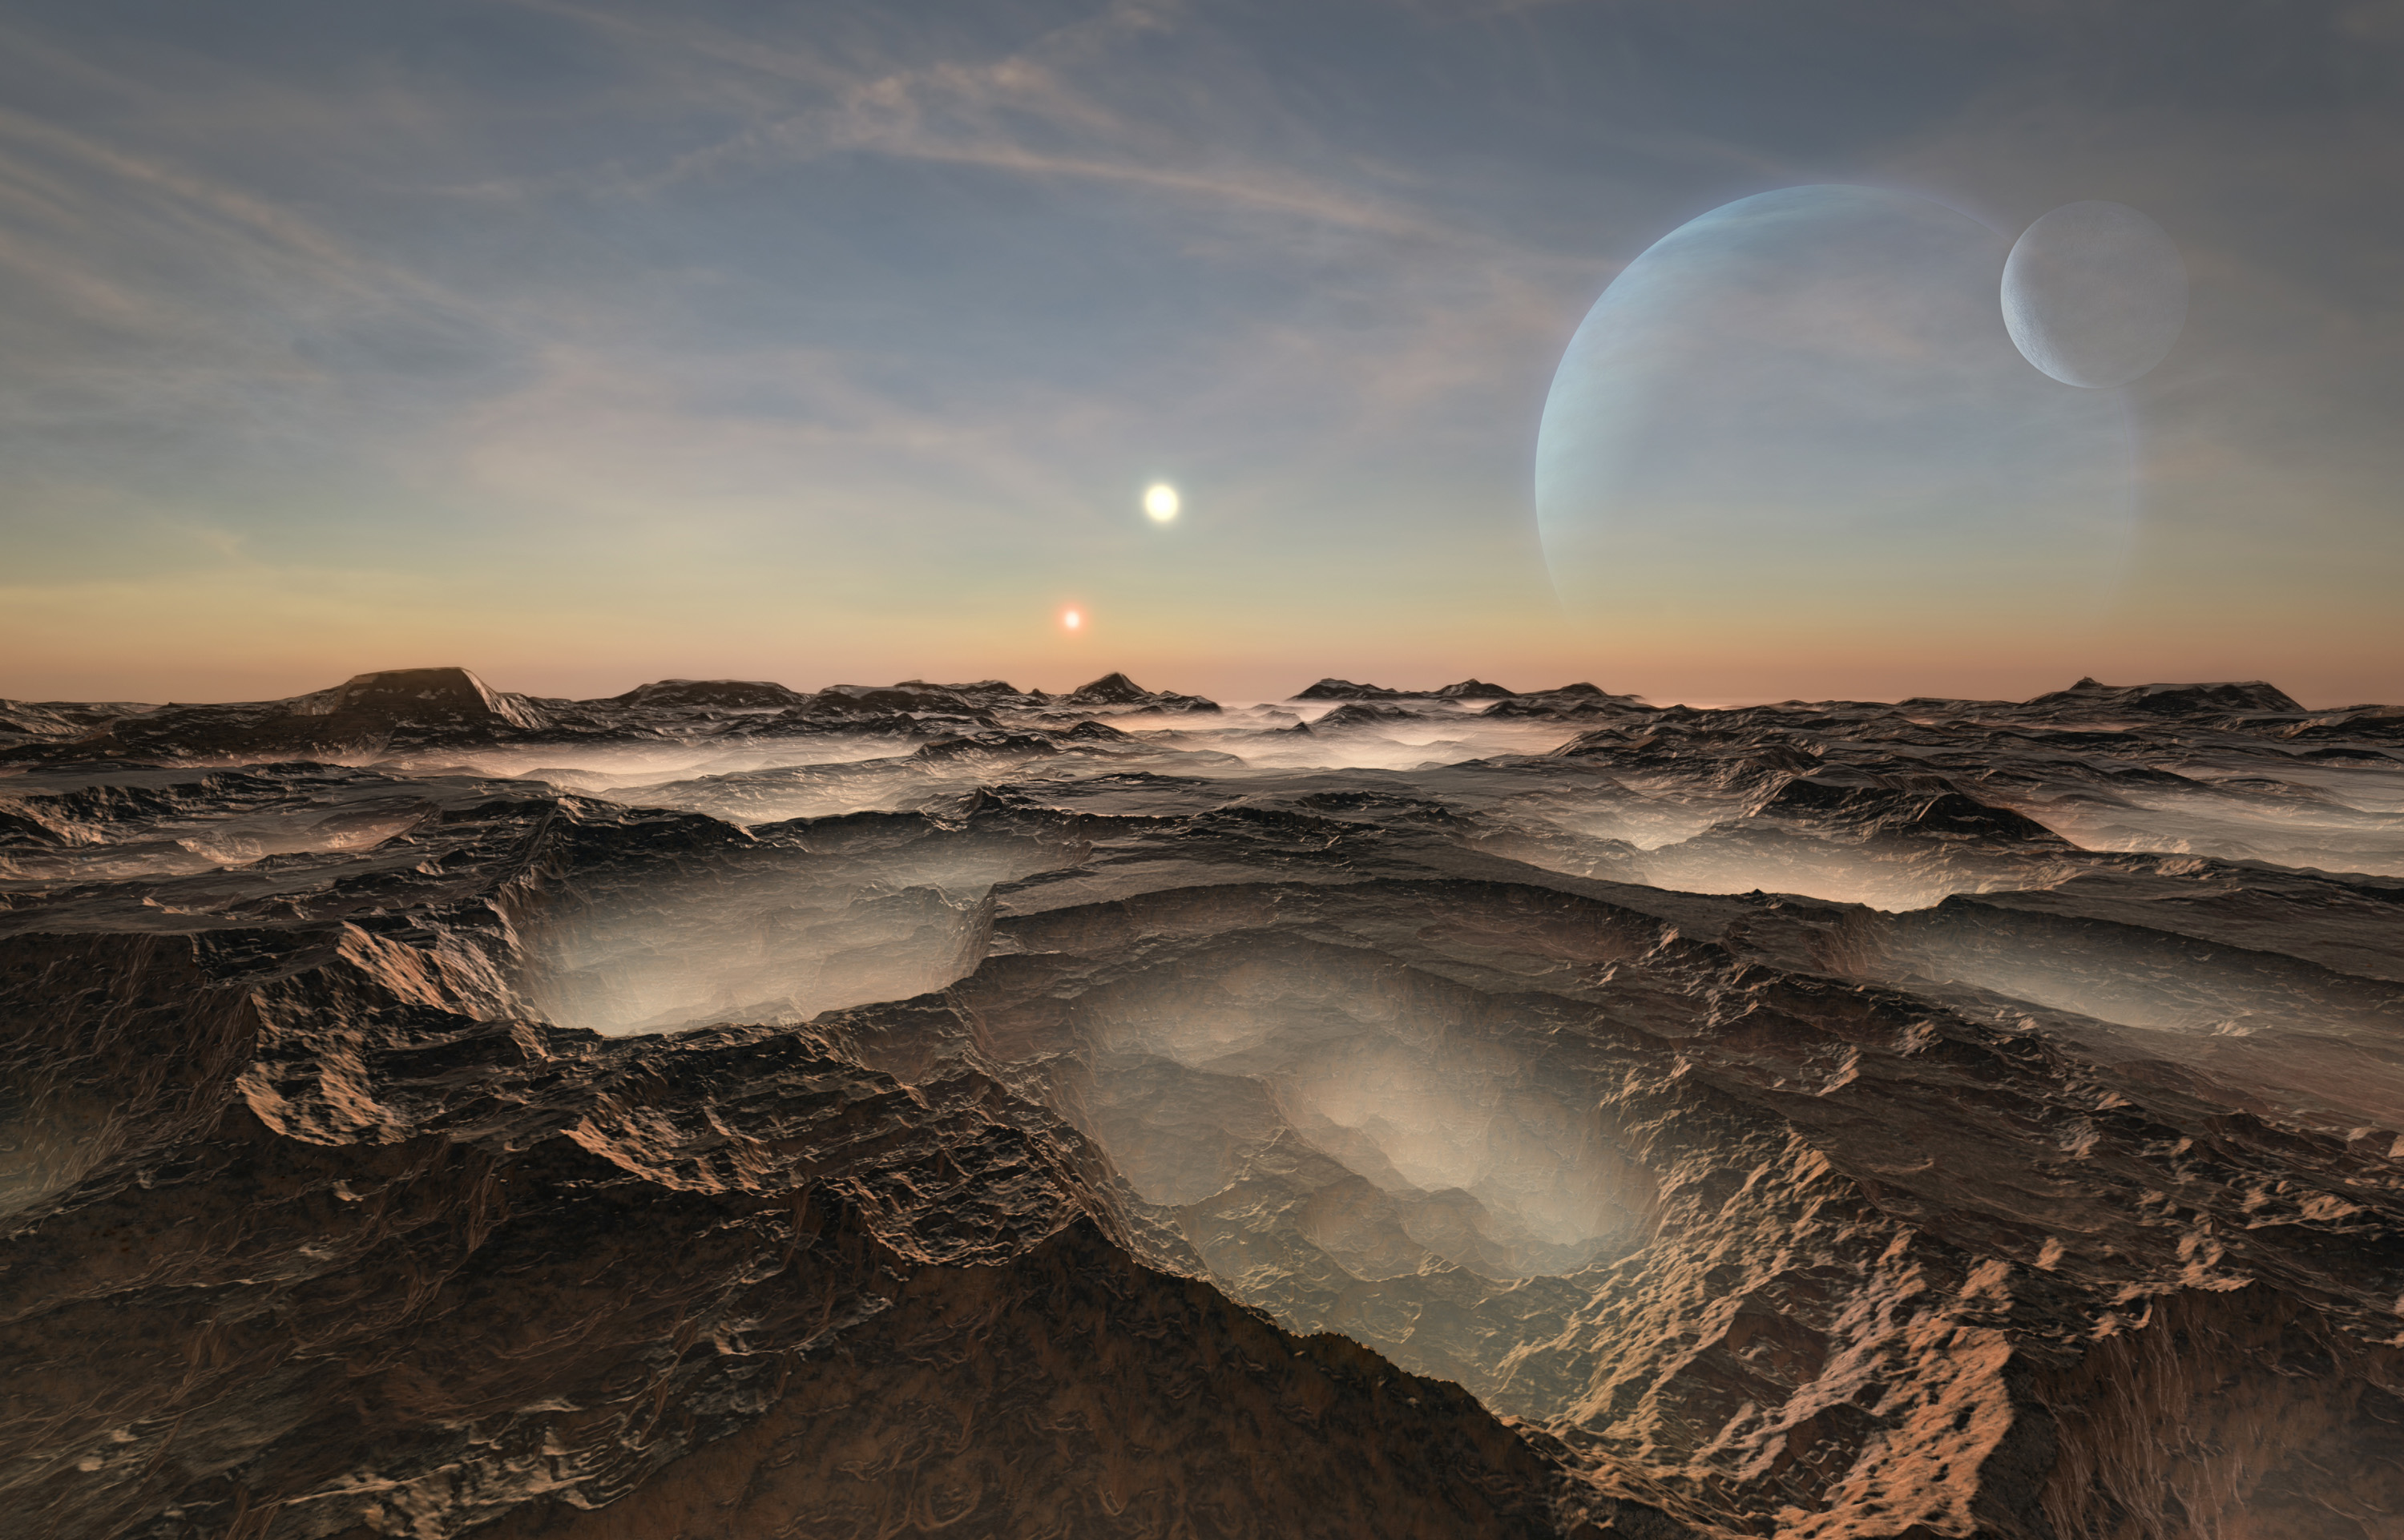 View from a distant planet with two suns